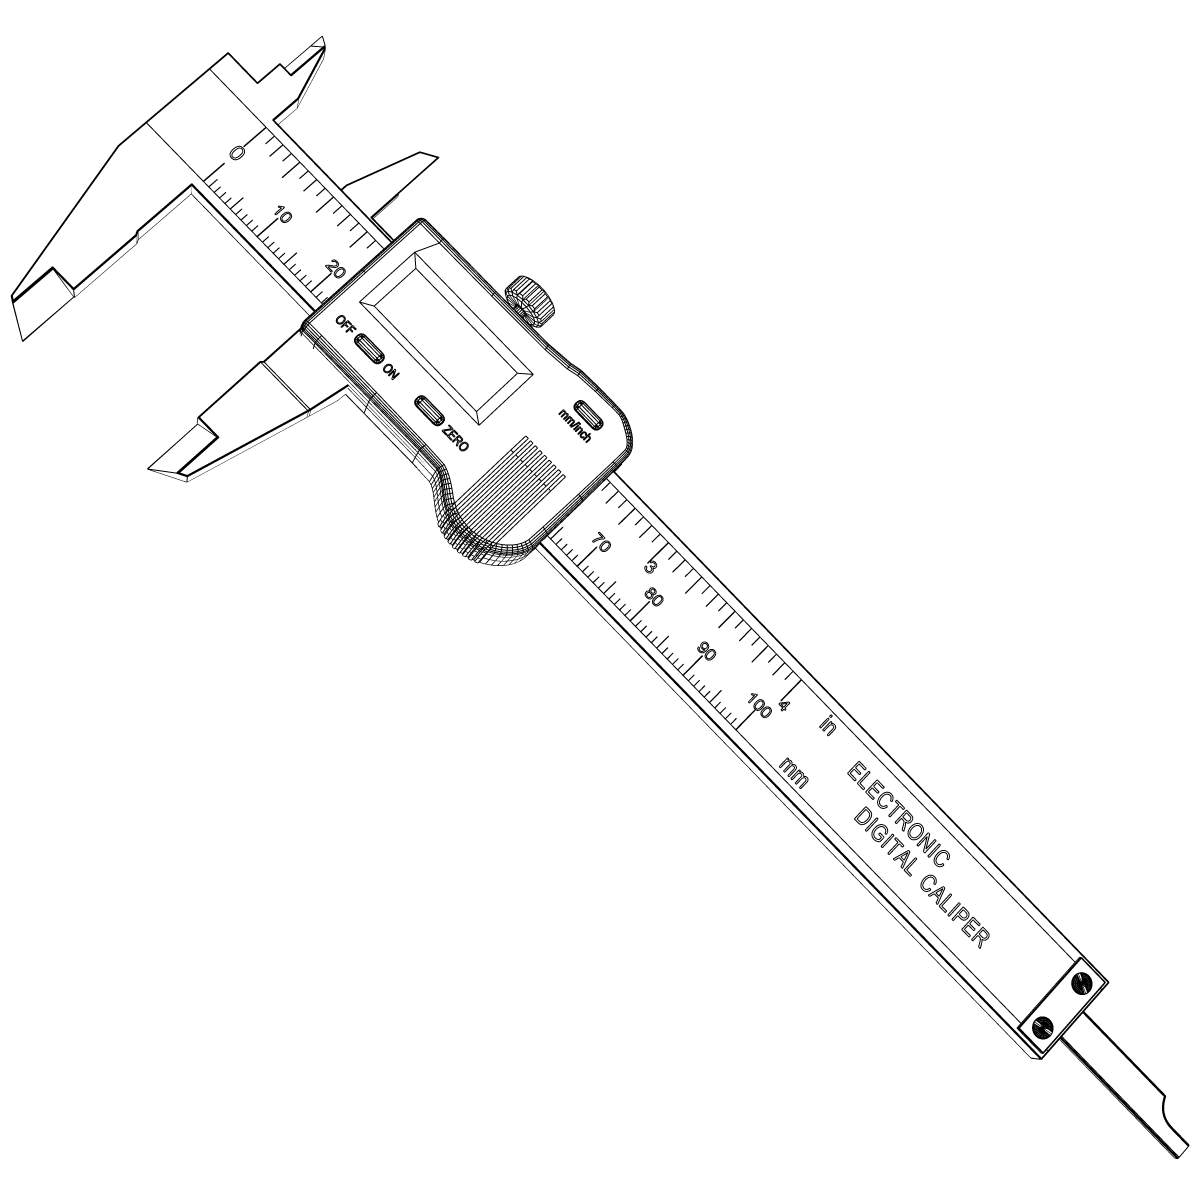 Digital Caliper 3d Model Max Obj 3ds Wrl Wrz